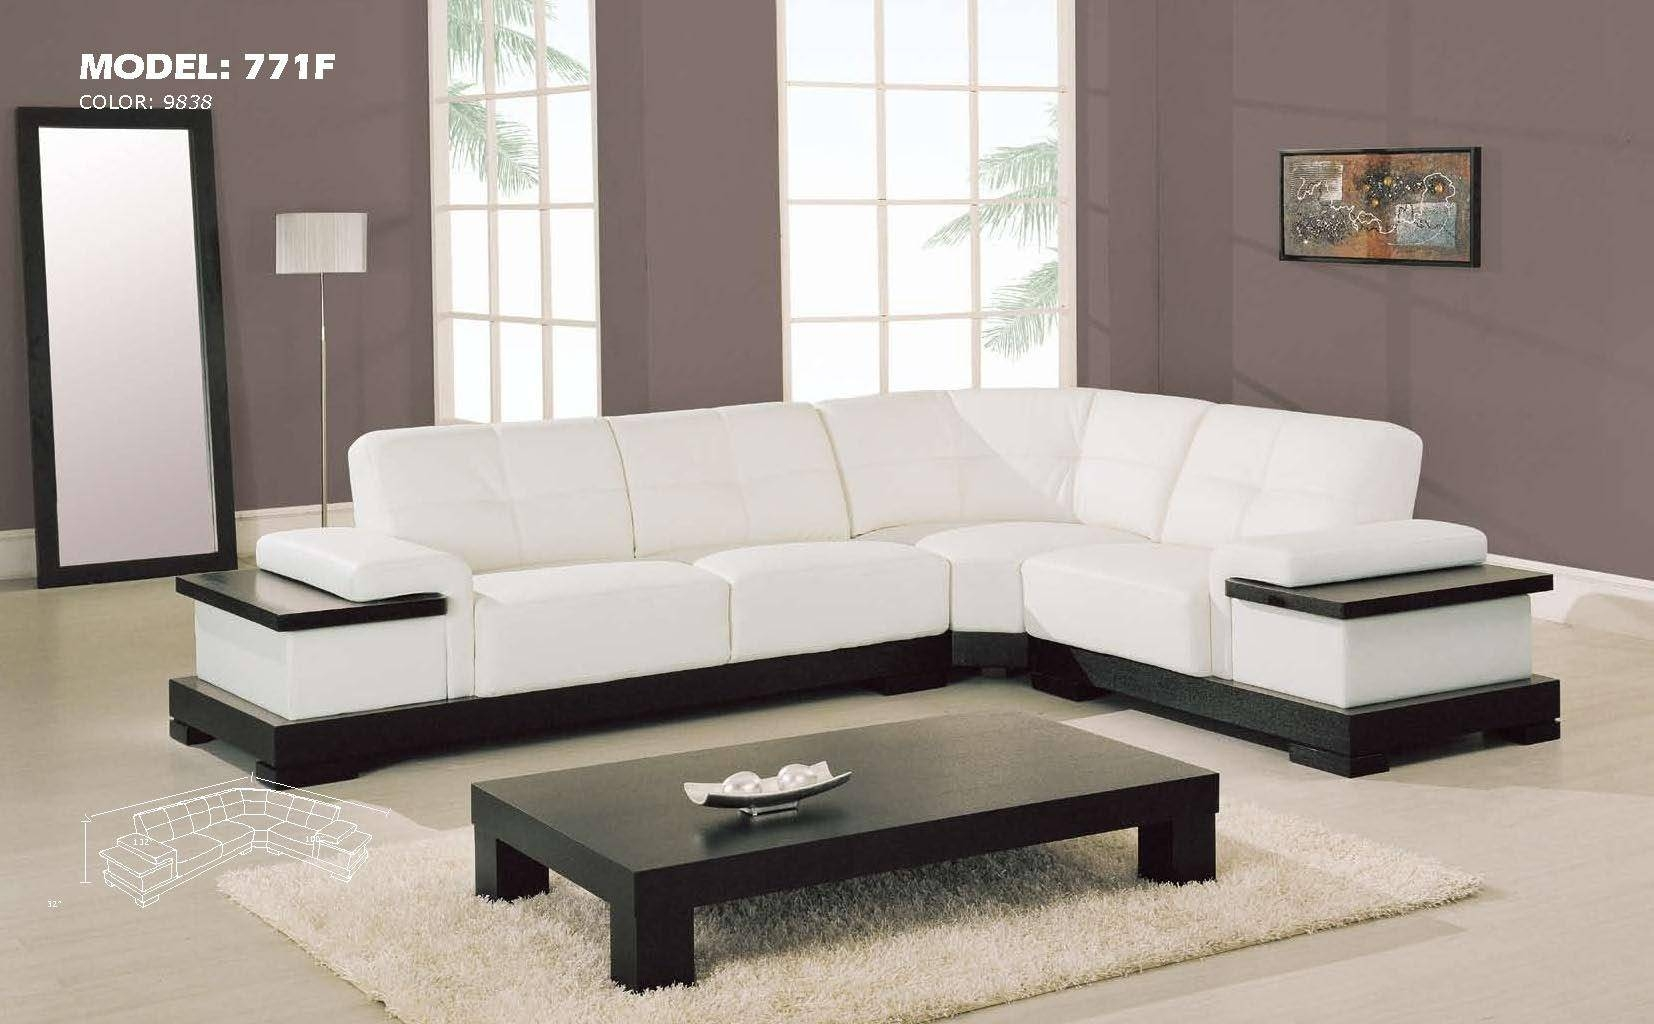 Www.cleanupflorida/wp-Content/uploads/2017/04/ for Compact Sectional Sofas (Image 16 of 30)